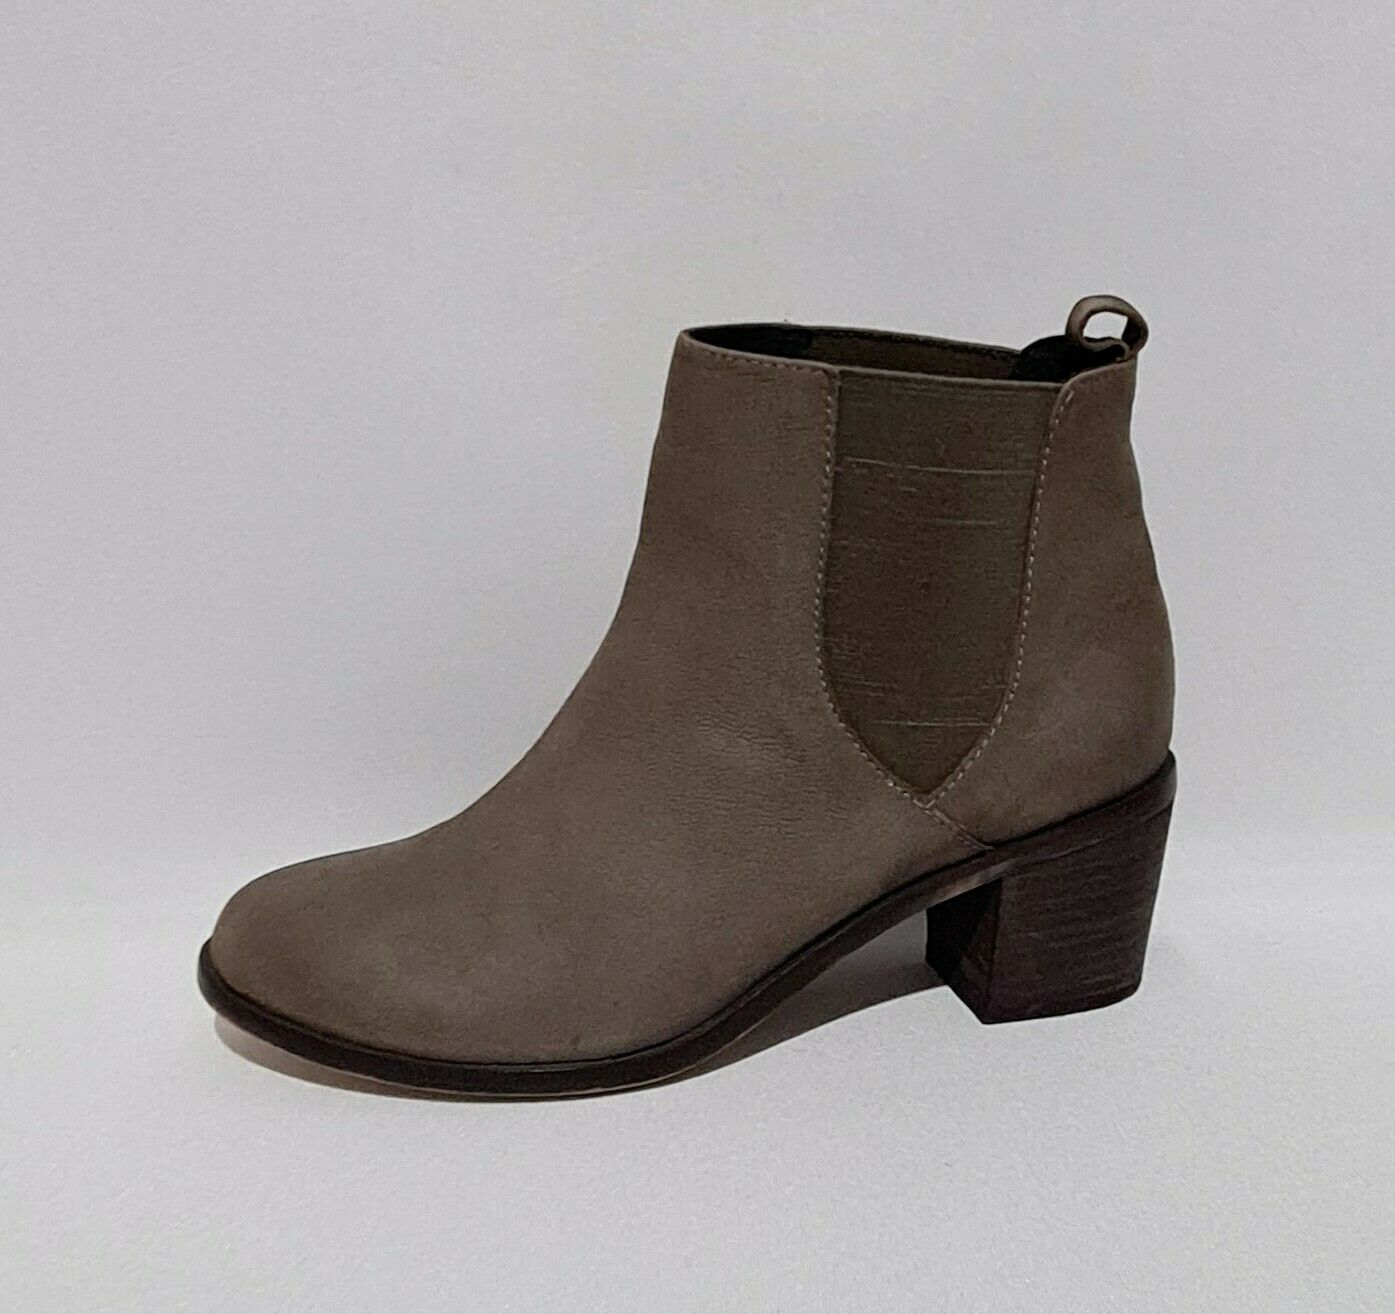 Topshop Brown Genuine Leather Ankle Boots UK 7 / EU 41 VGC